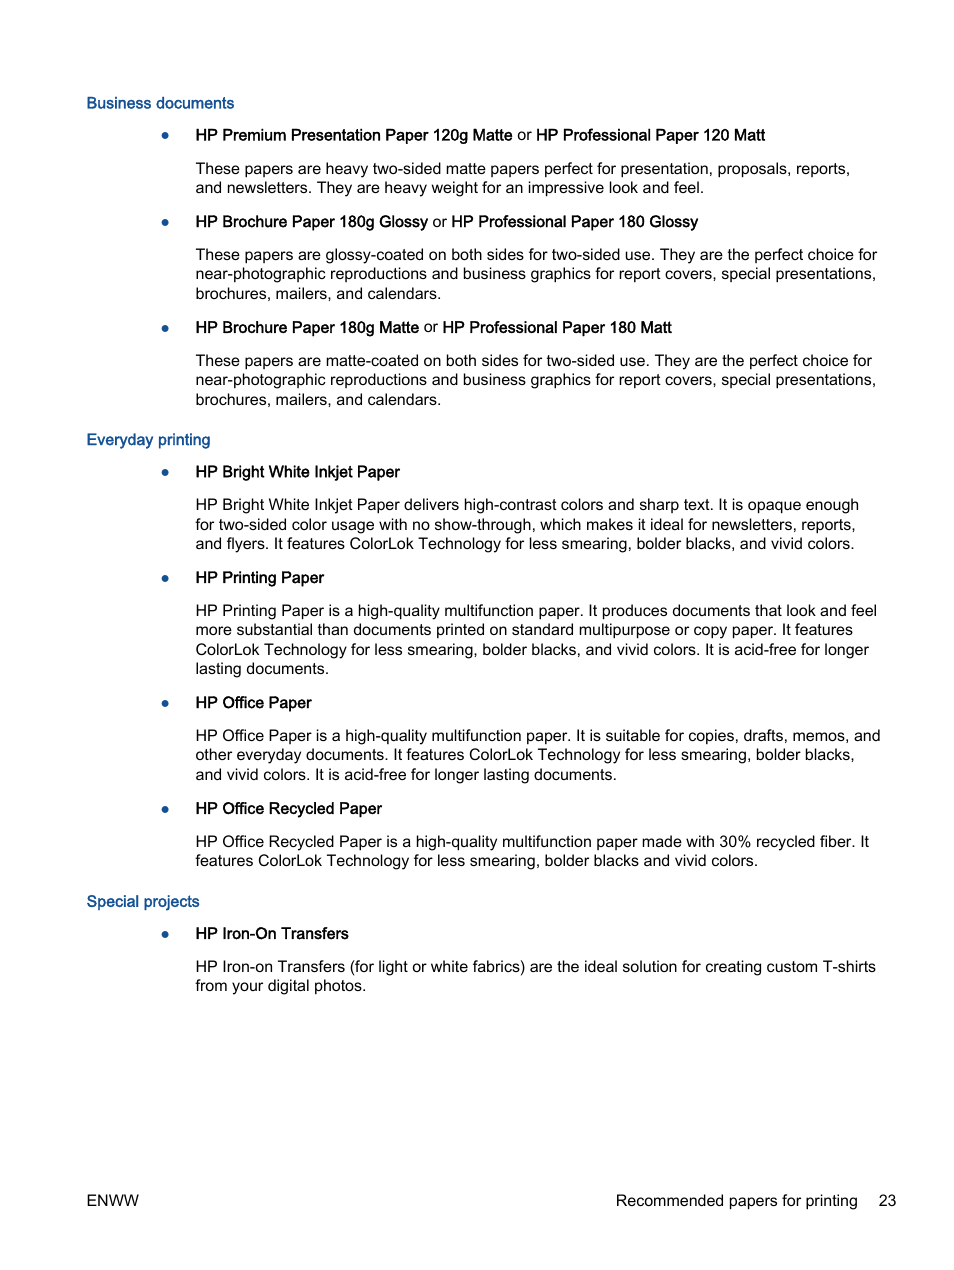 HP Officejet 4630 e-All-in-One Printer User Manual | Page 29